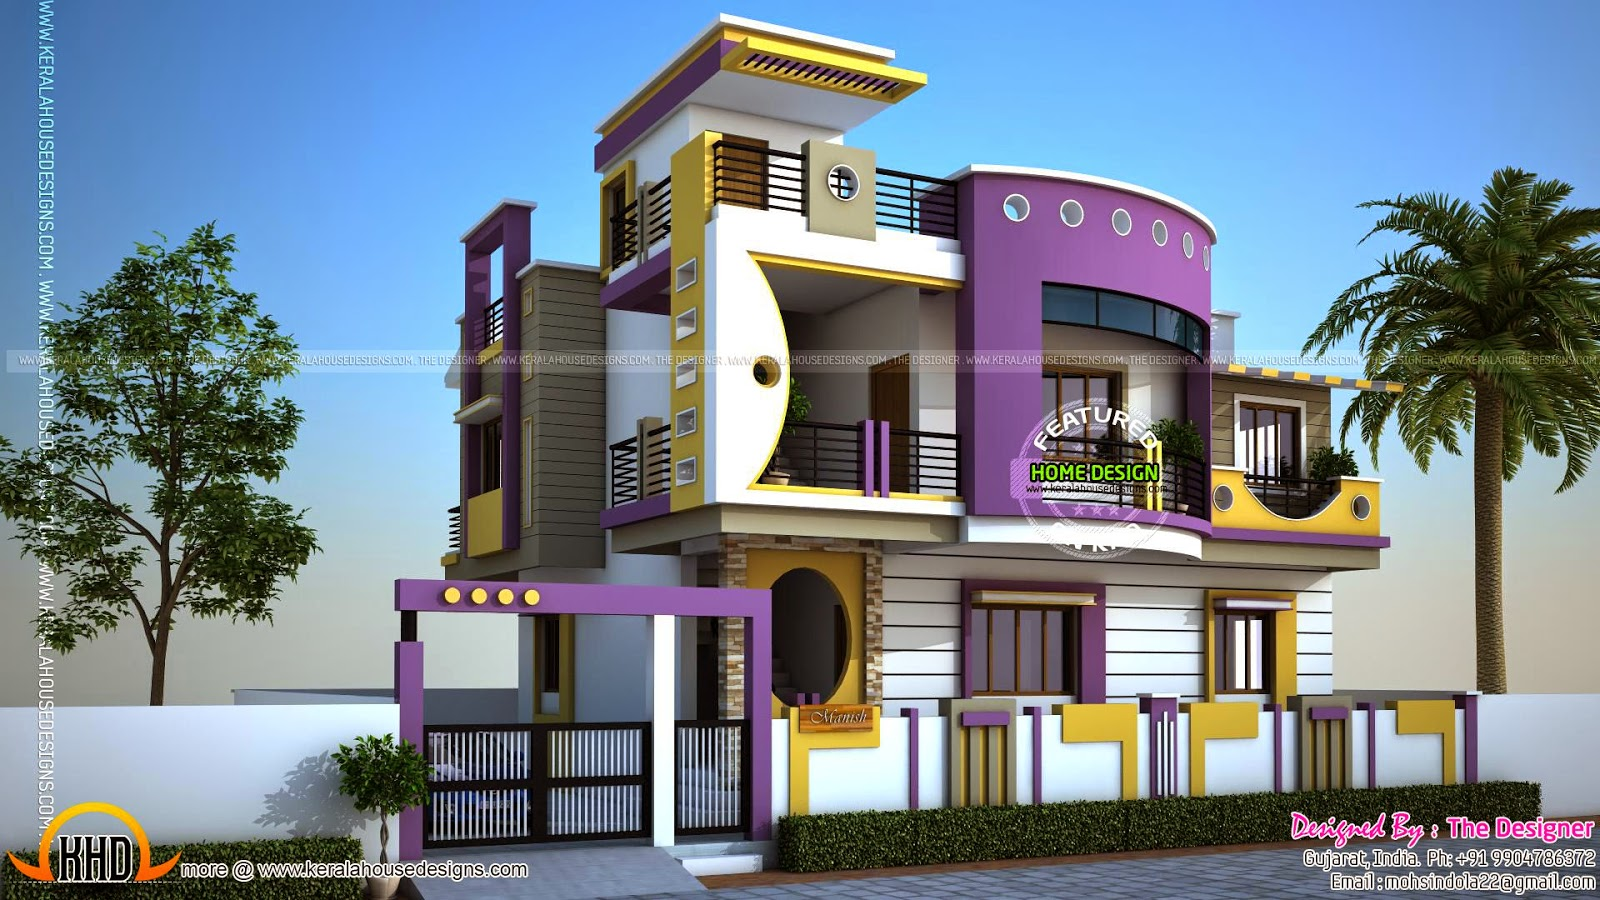 House exterior designs in contemporary style kerala home for Best house exterior designs